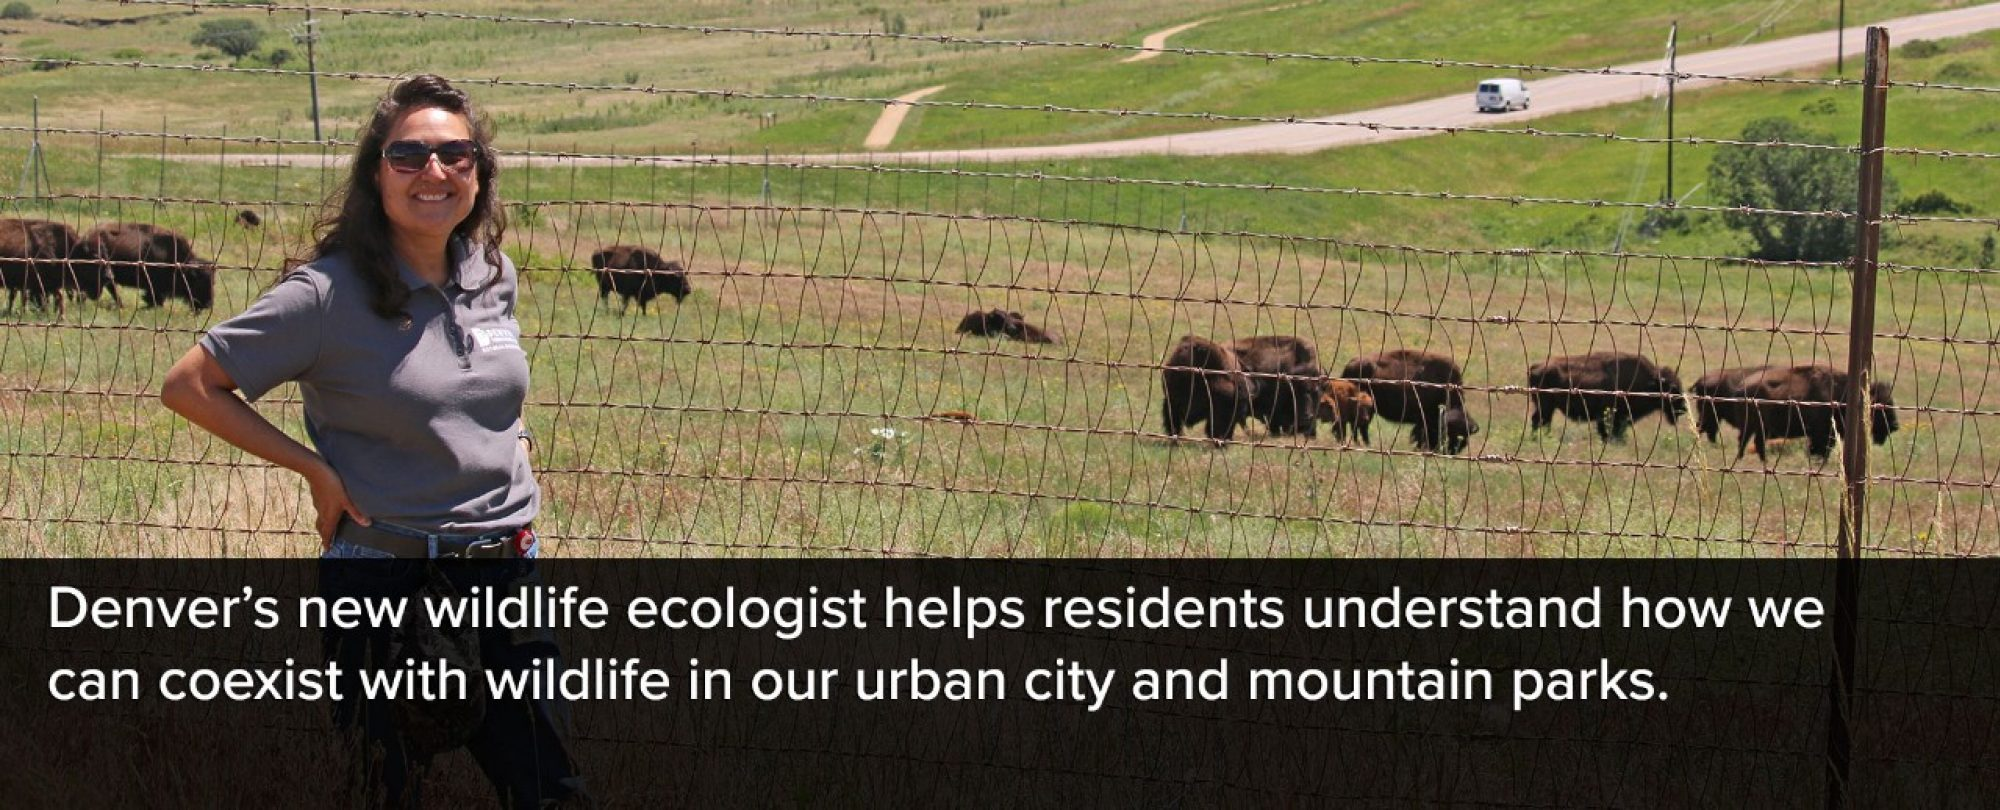 Photo of Denver Parks and Recreation's new wildlife ecologist at the Genessee Park Buffalo habitat. Denver's new wildlife ecologist helps residents understand how we can coexist with wildlife in our urban city and mountain parks.